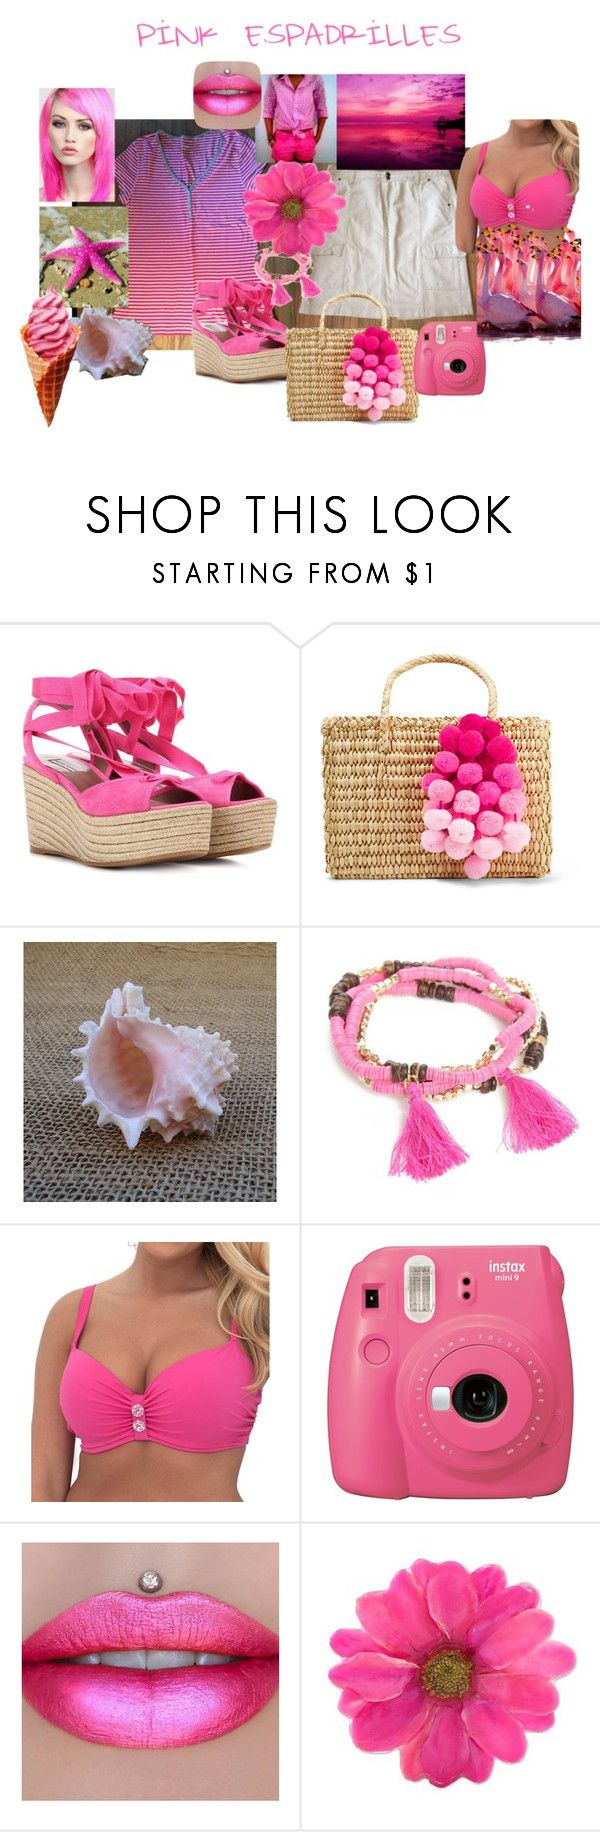 """Greenchic in Pink Espadrilles Beach"" by greenchicdesignz ❤ liked on Polyvore featuring Tabitha Simmons, Nannacay, New Directions, Curvy Kate, Fujifilm, Lime Crime and NOVICA"